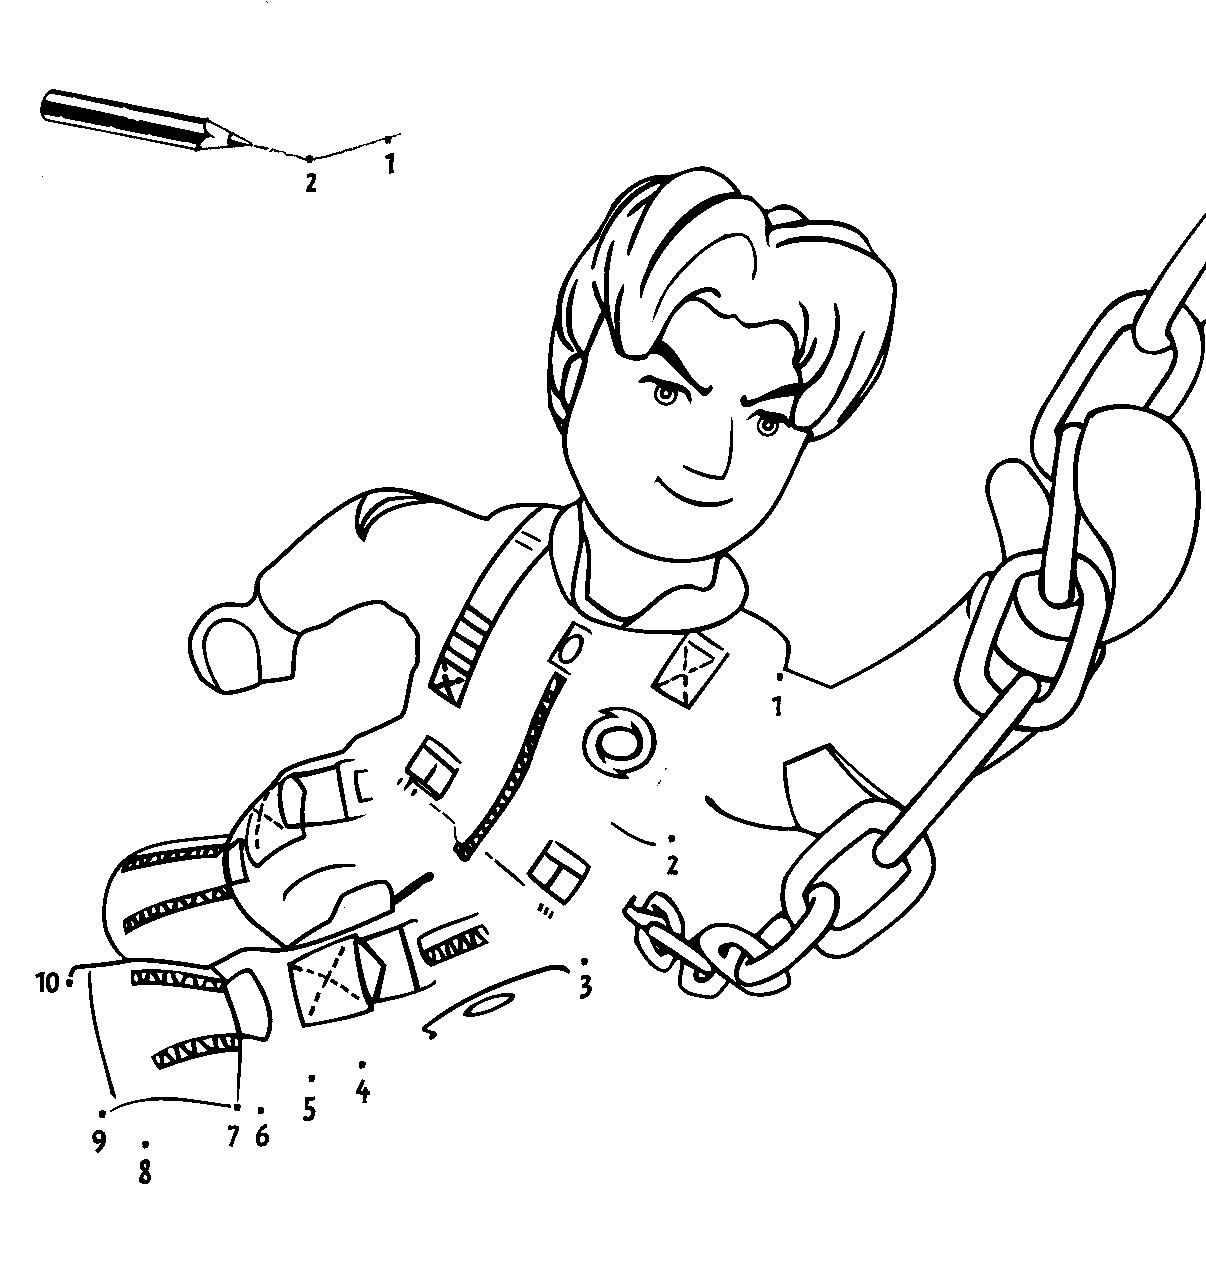 miner coloring pages - photo #26